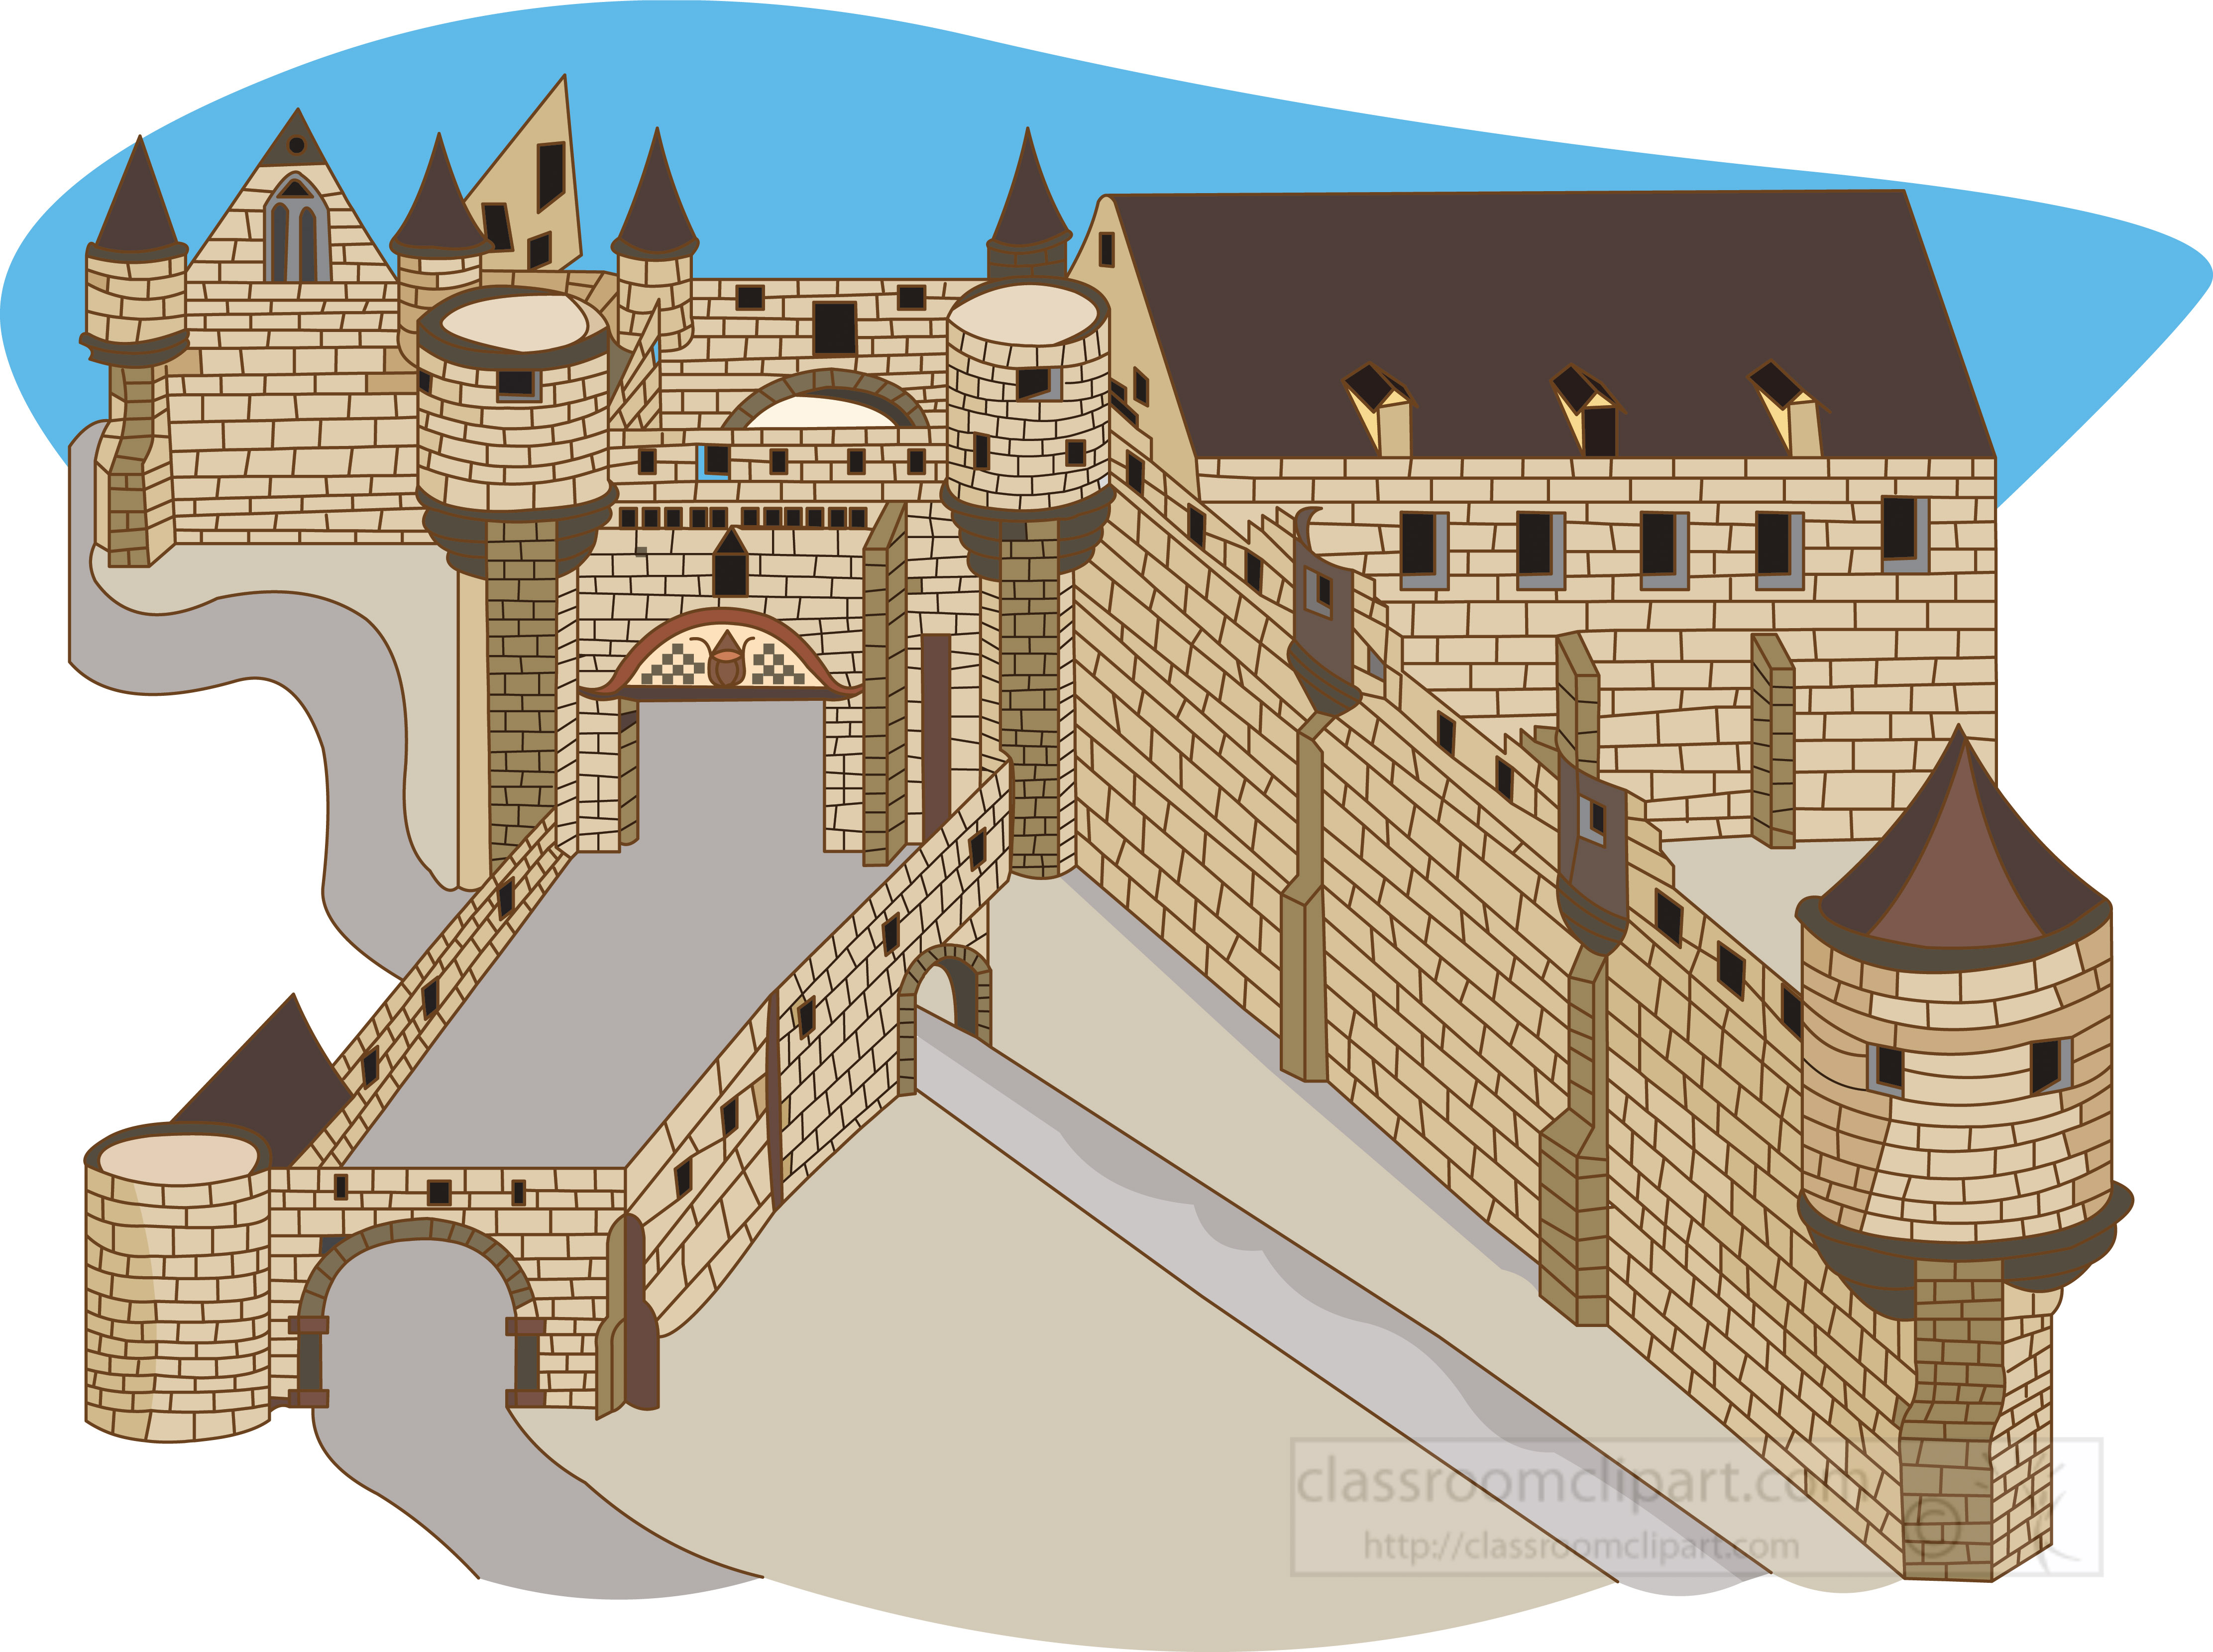 medieval-castle-clipart-graphic-image-90019.jpg